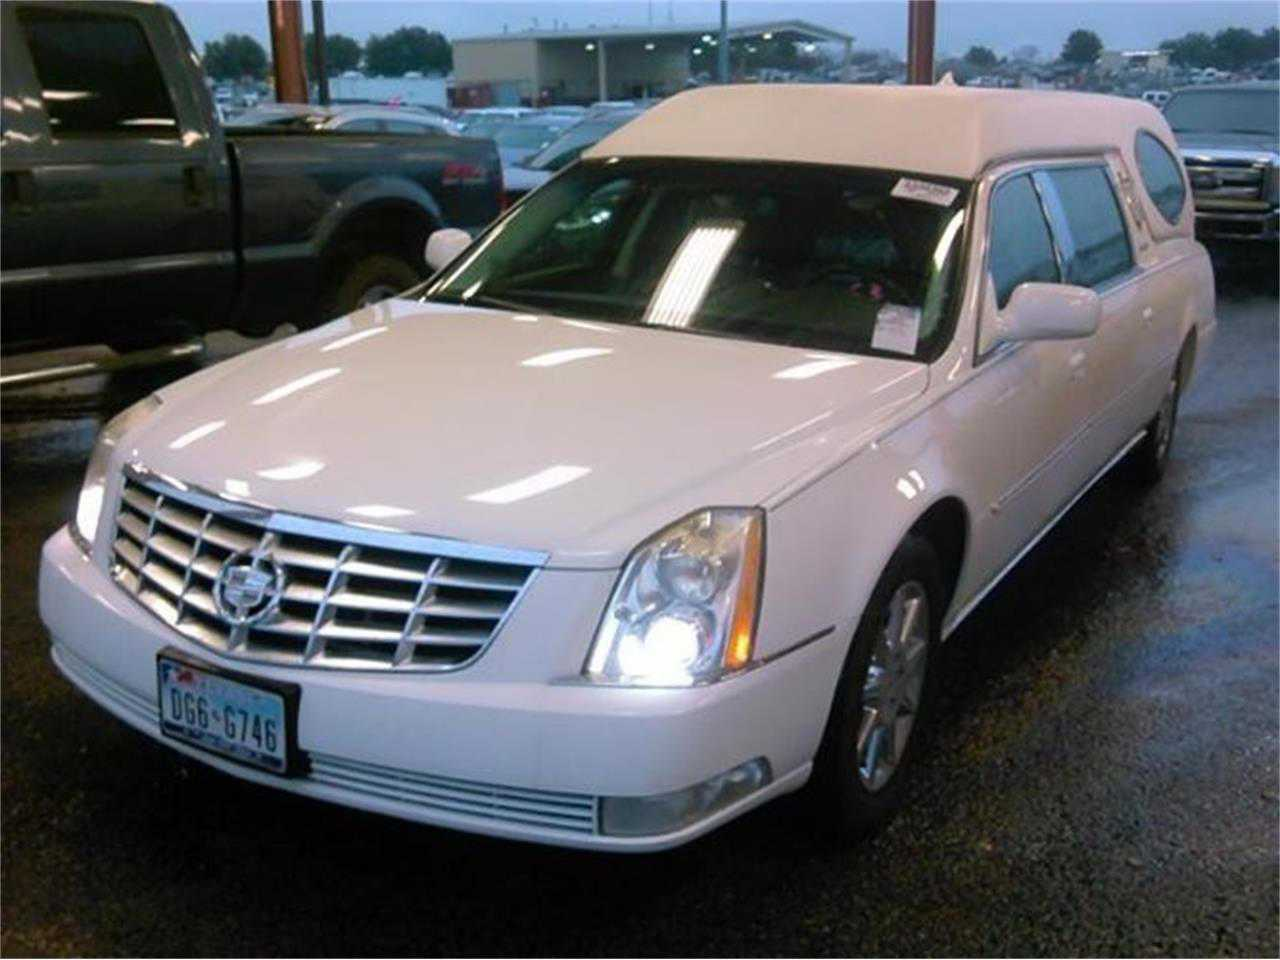 Used Cadillac Hearse For Sale In Arizona